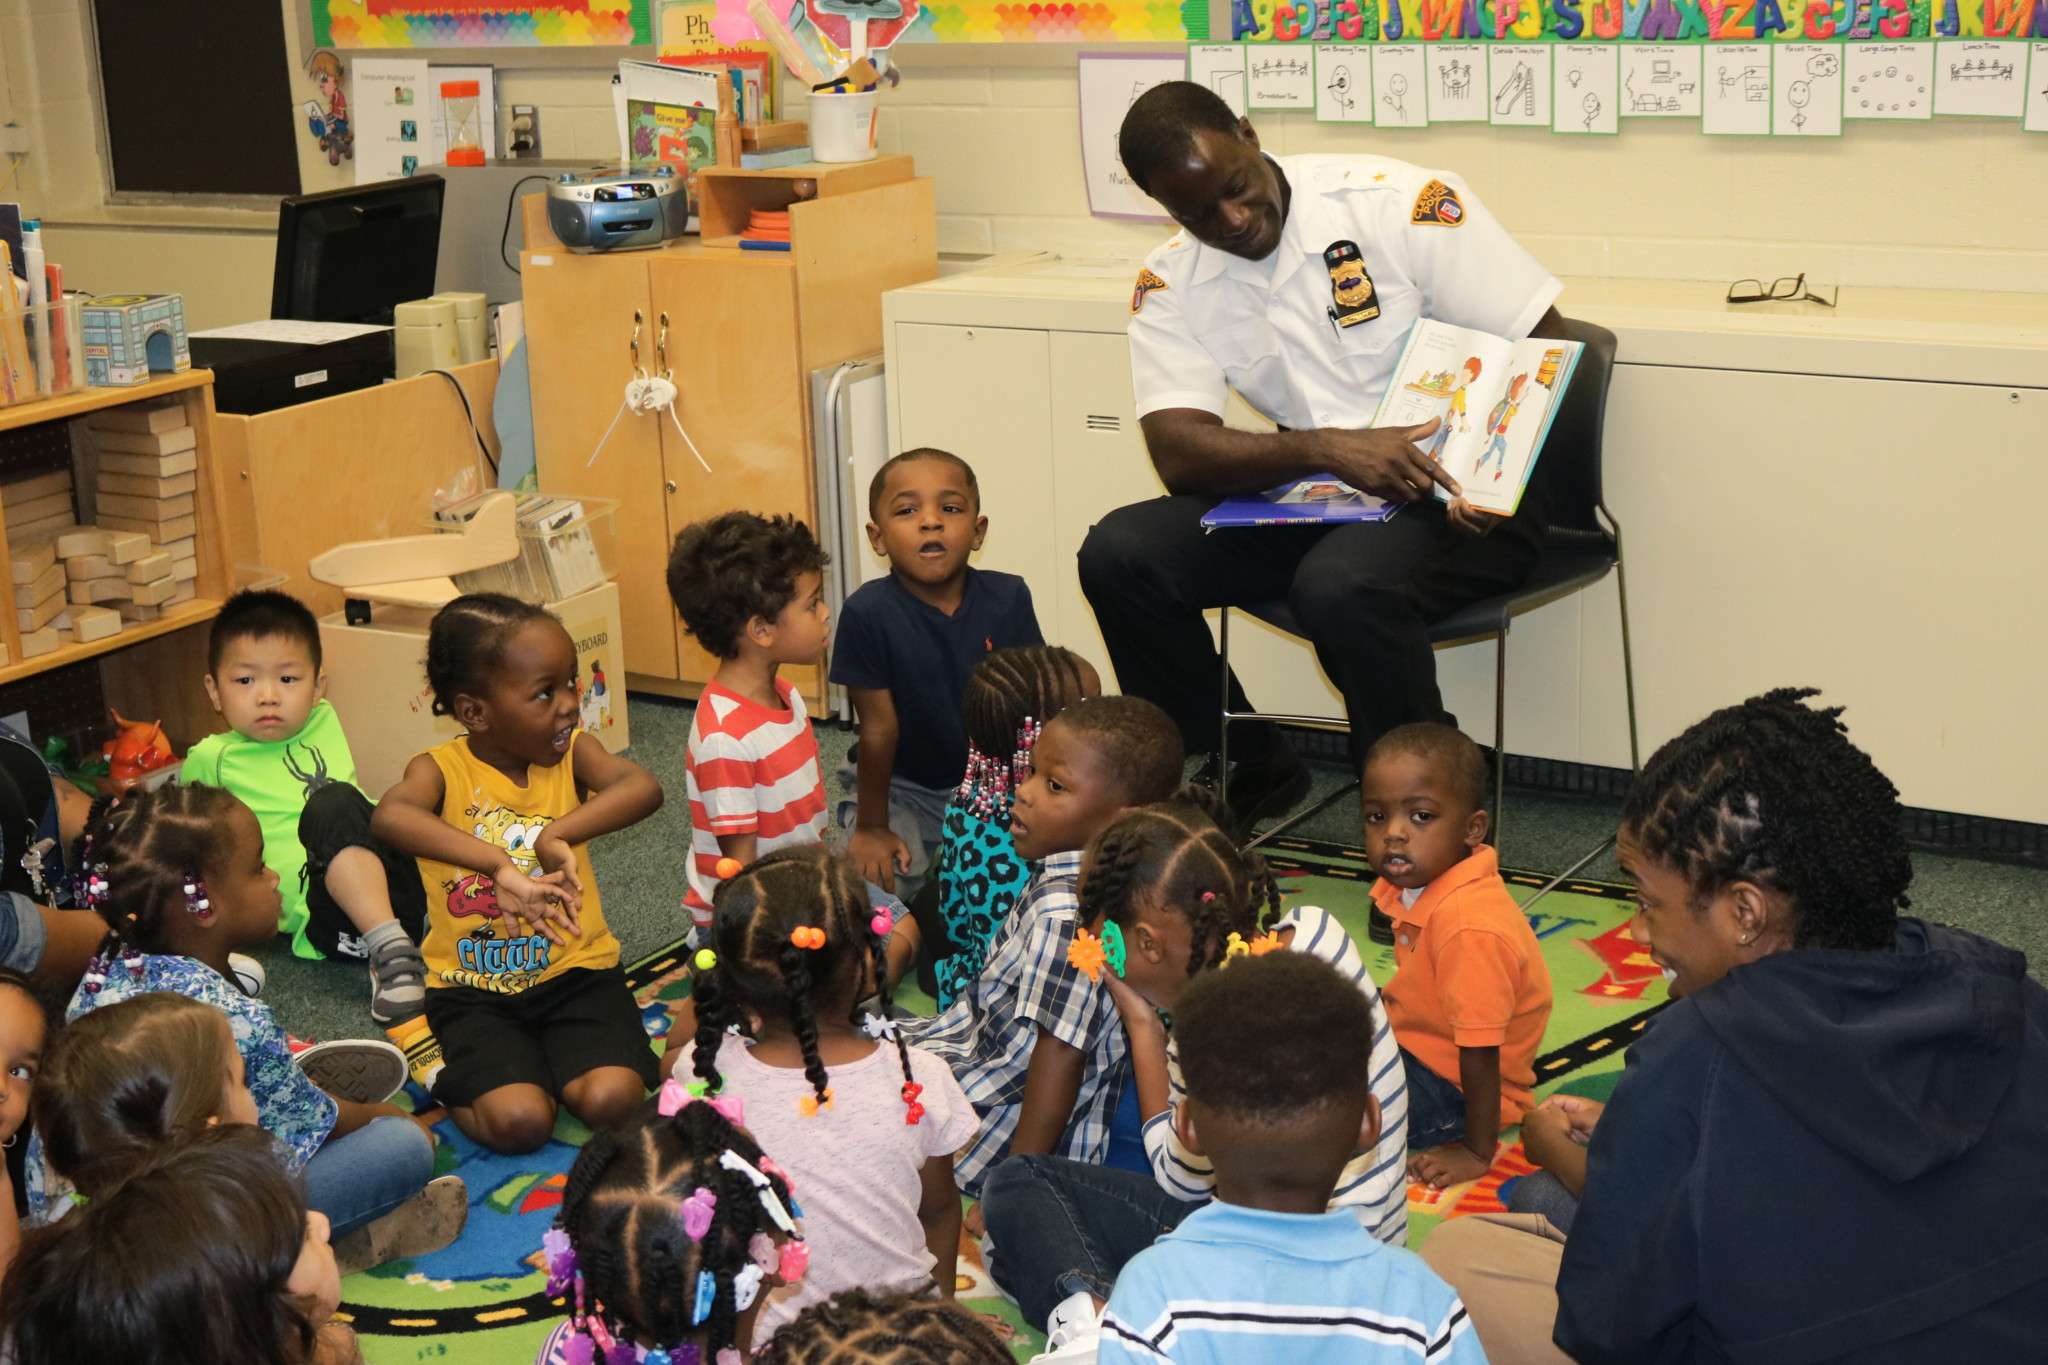 Cleveland Police Chief Calvin Williams reads to Head Start students as part of Friendship through Reading program